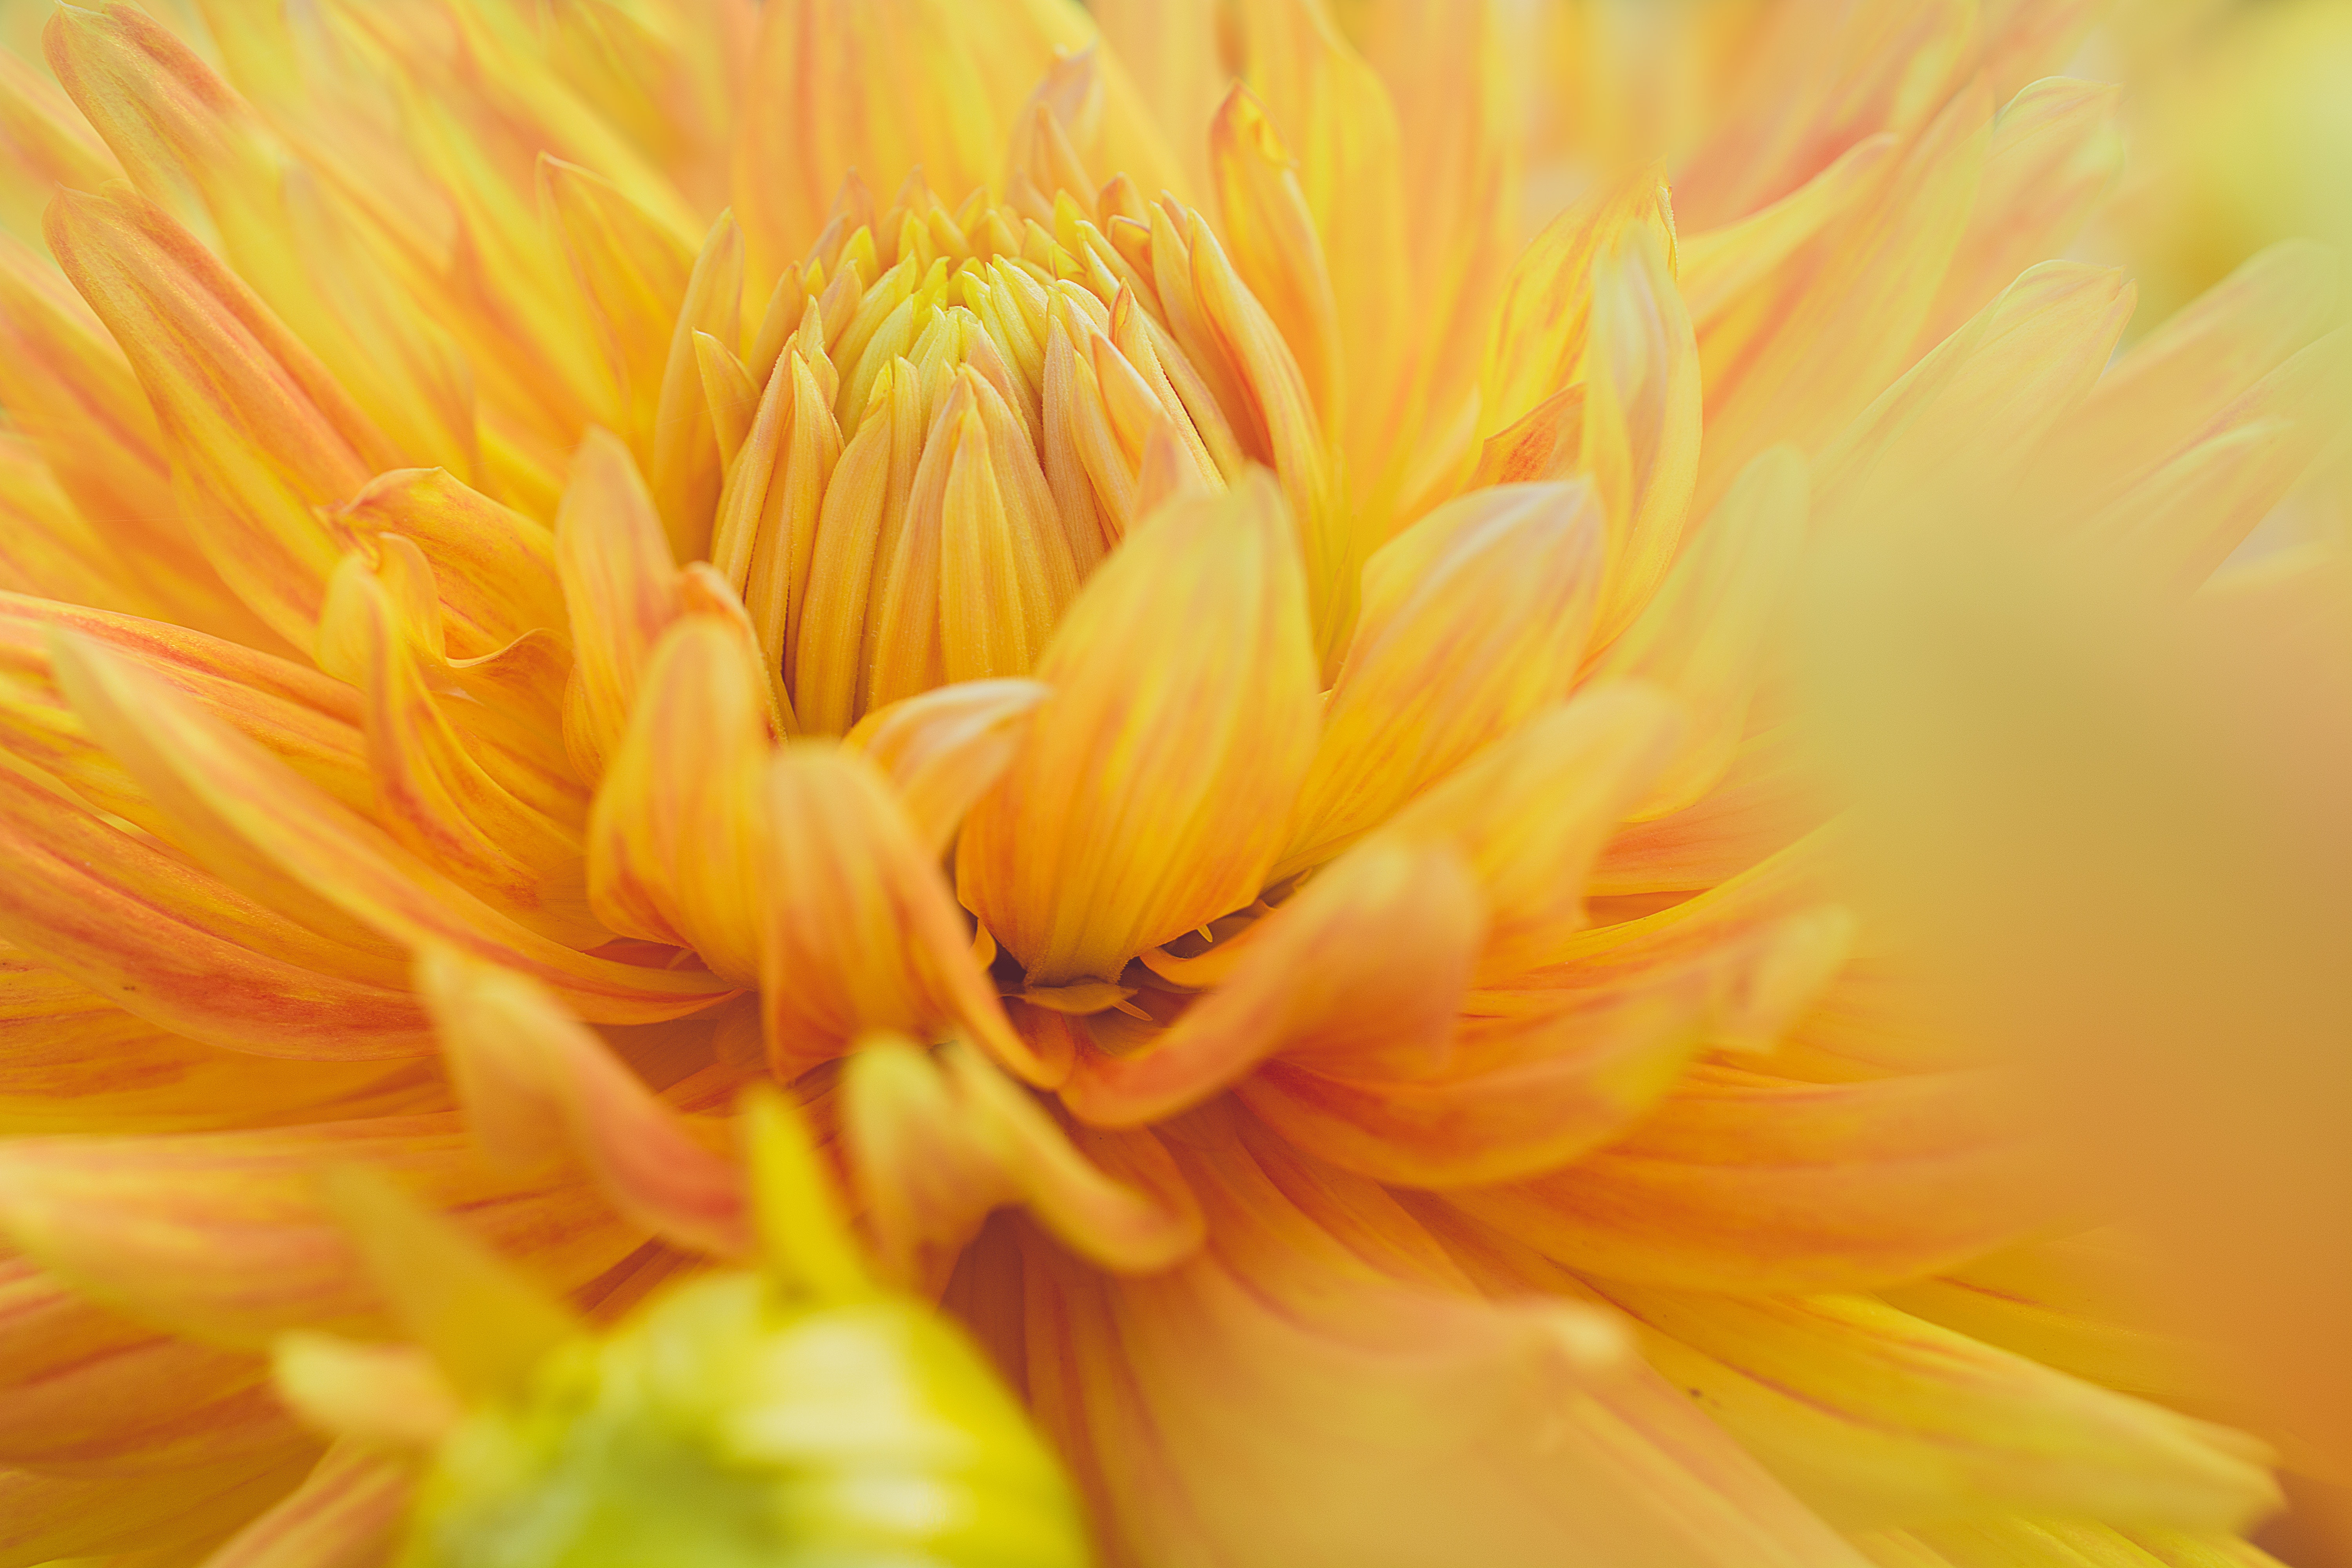 Free photo close up photography of yellow dahlia flower nature close up photography of yellow dahlia flower izmirmasajfo